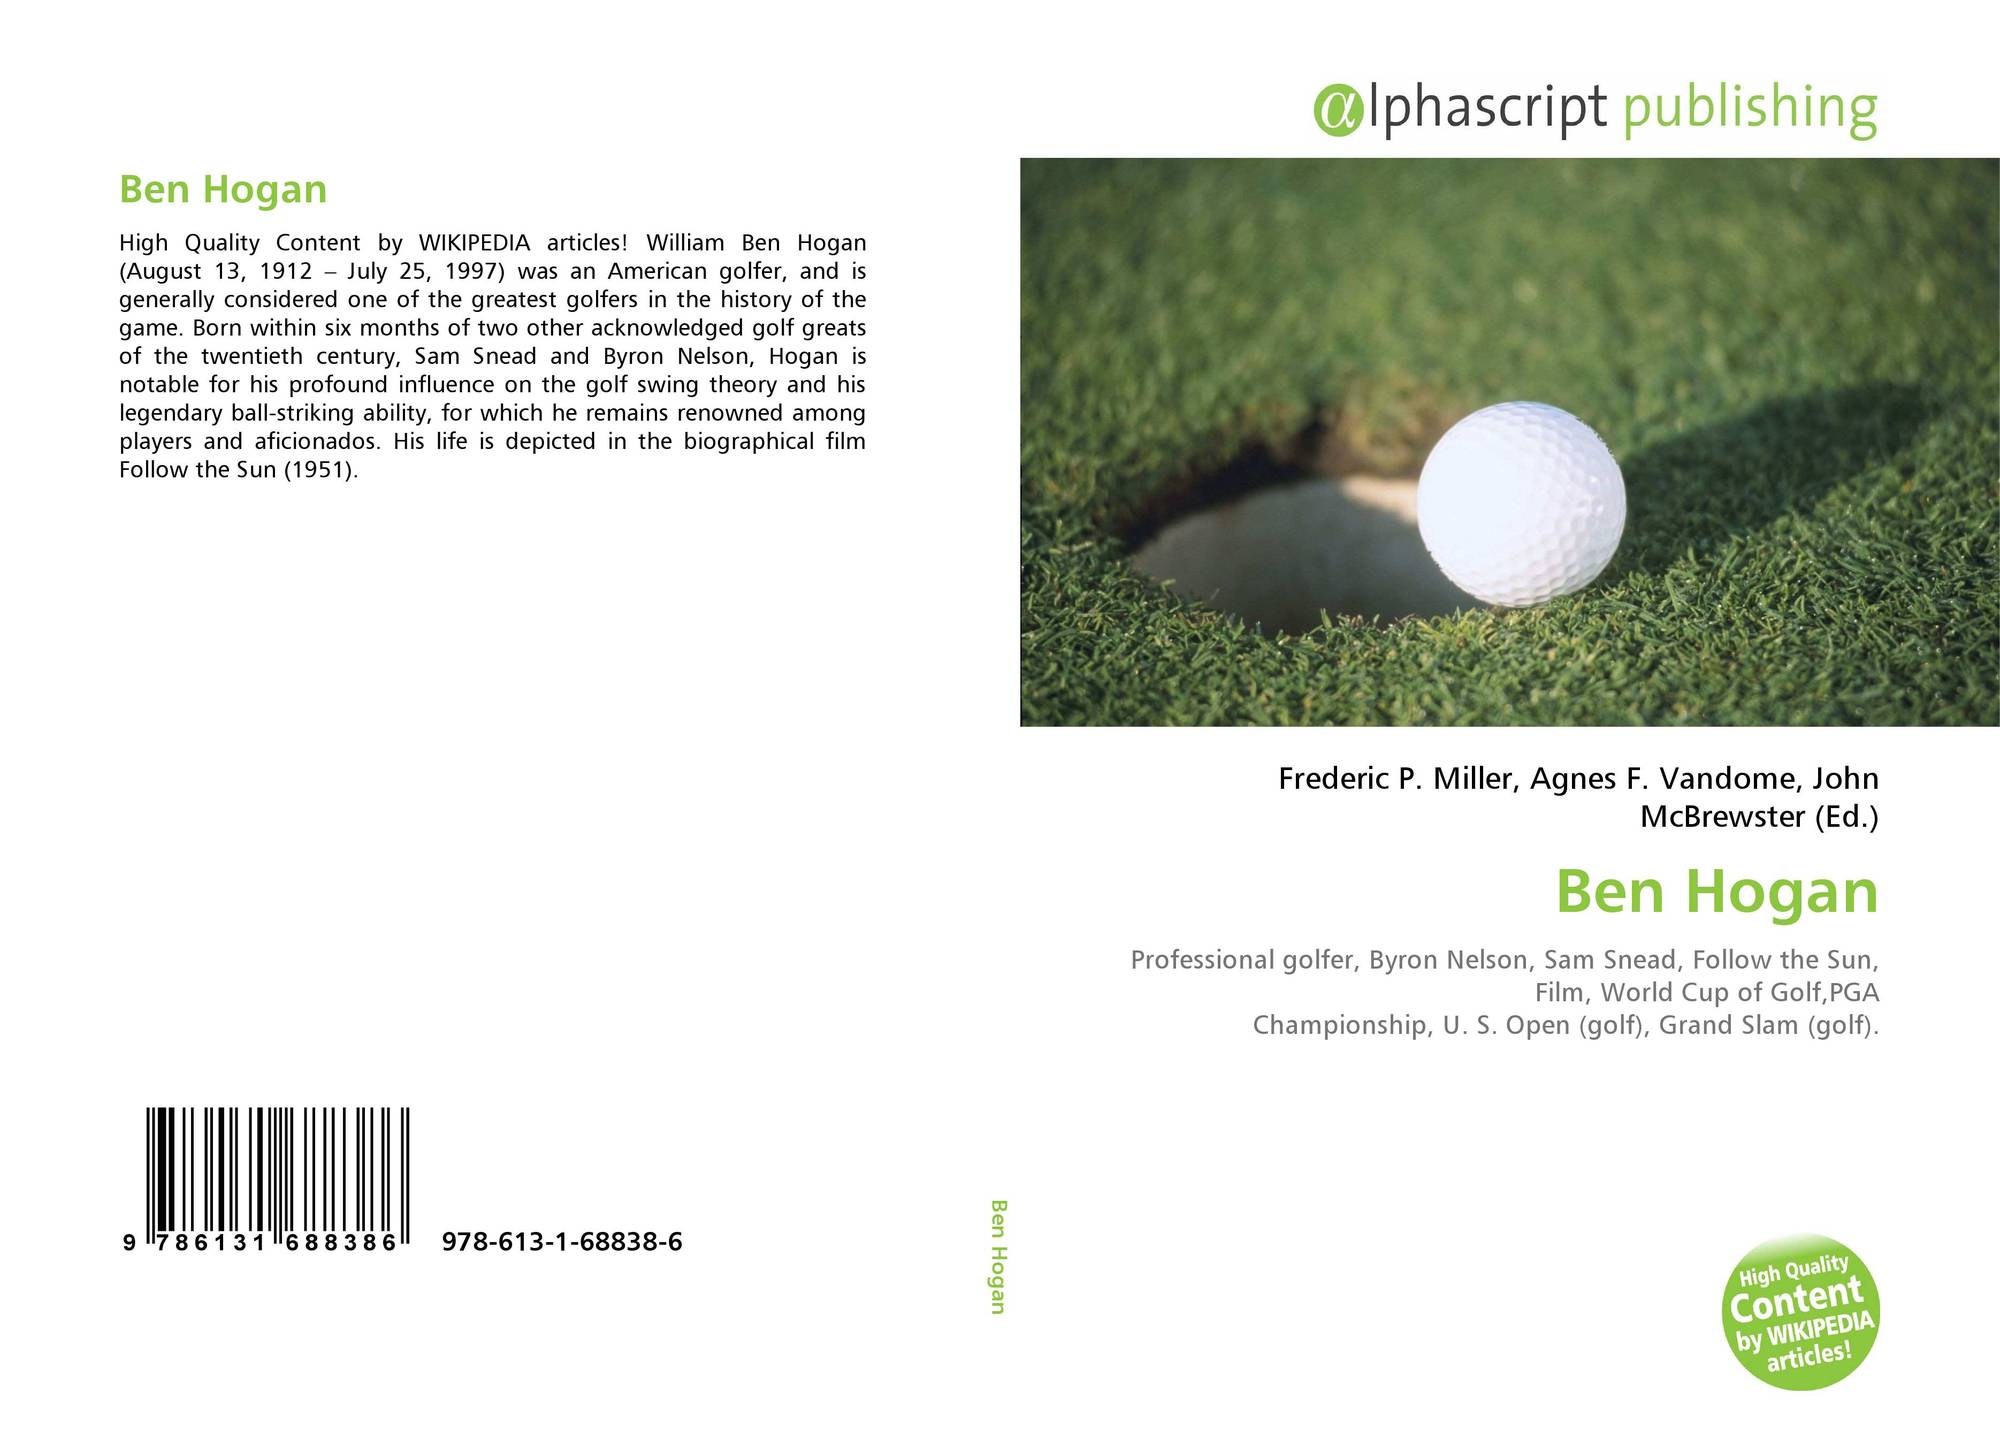 a biography of ben hogan an american professional golfer